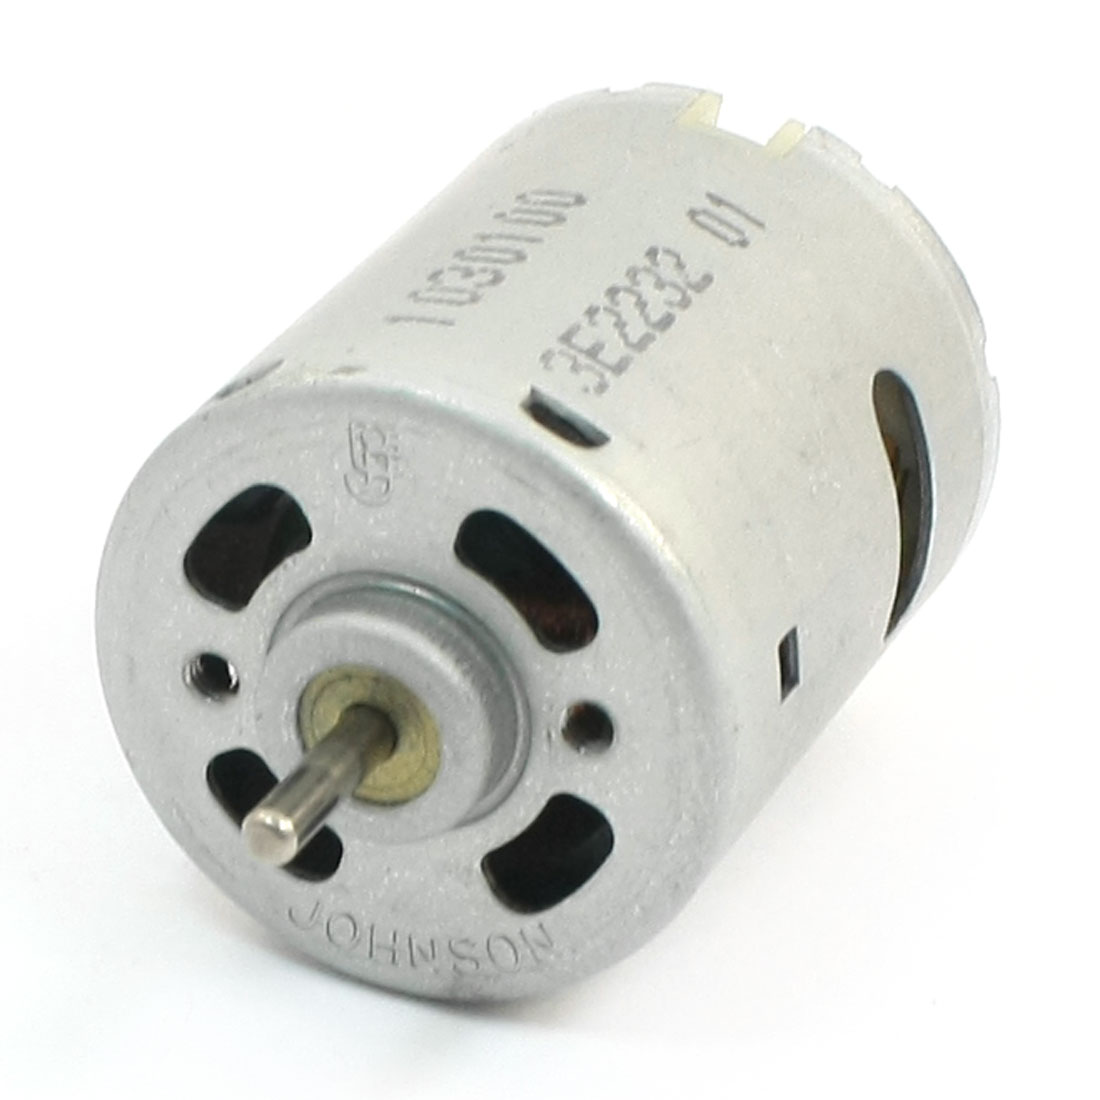 5400RPM-2Pin-Connector-DC-36V-360-Micro-Motor-for-Office-Equipment